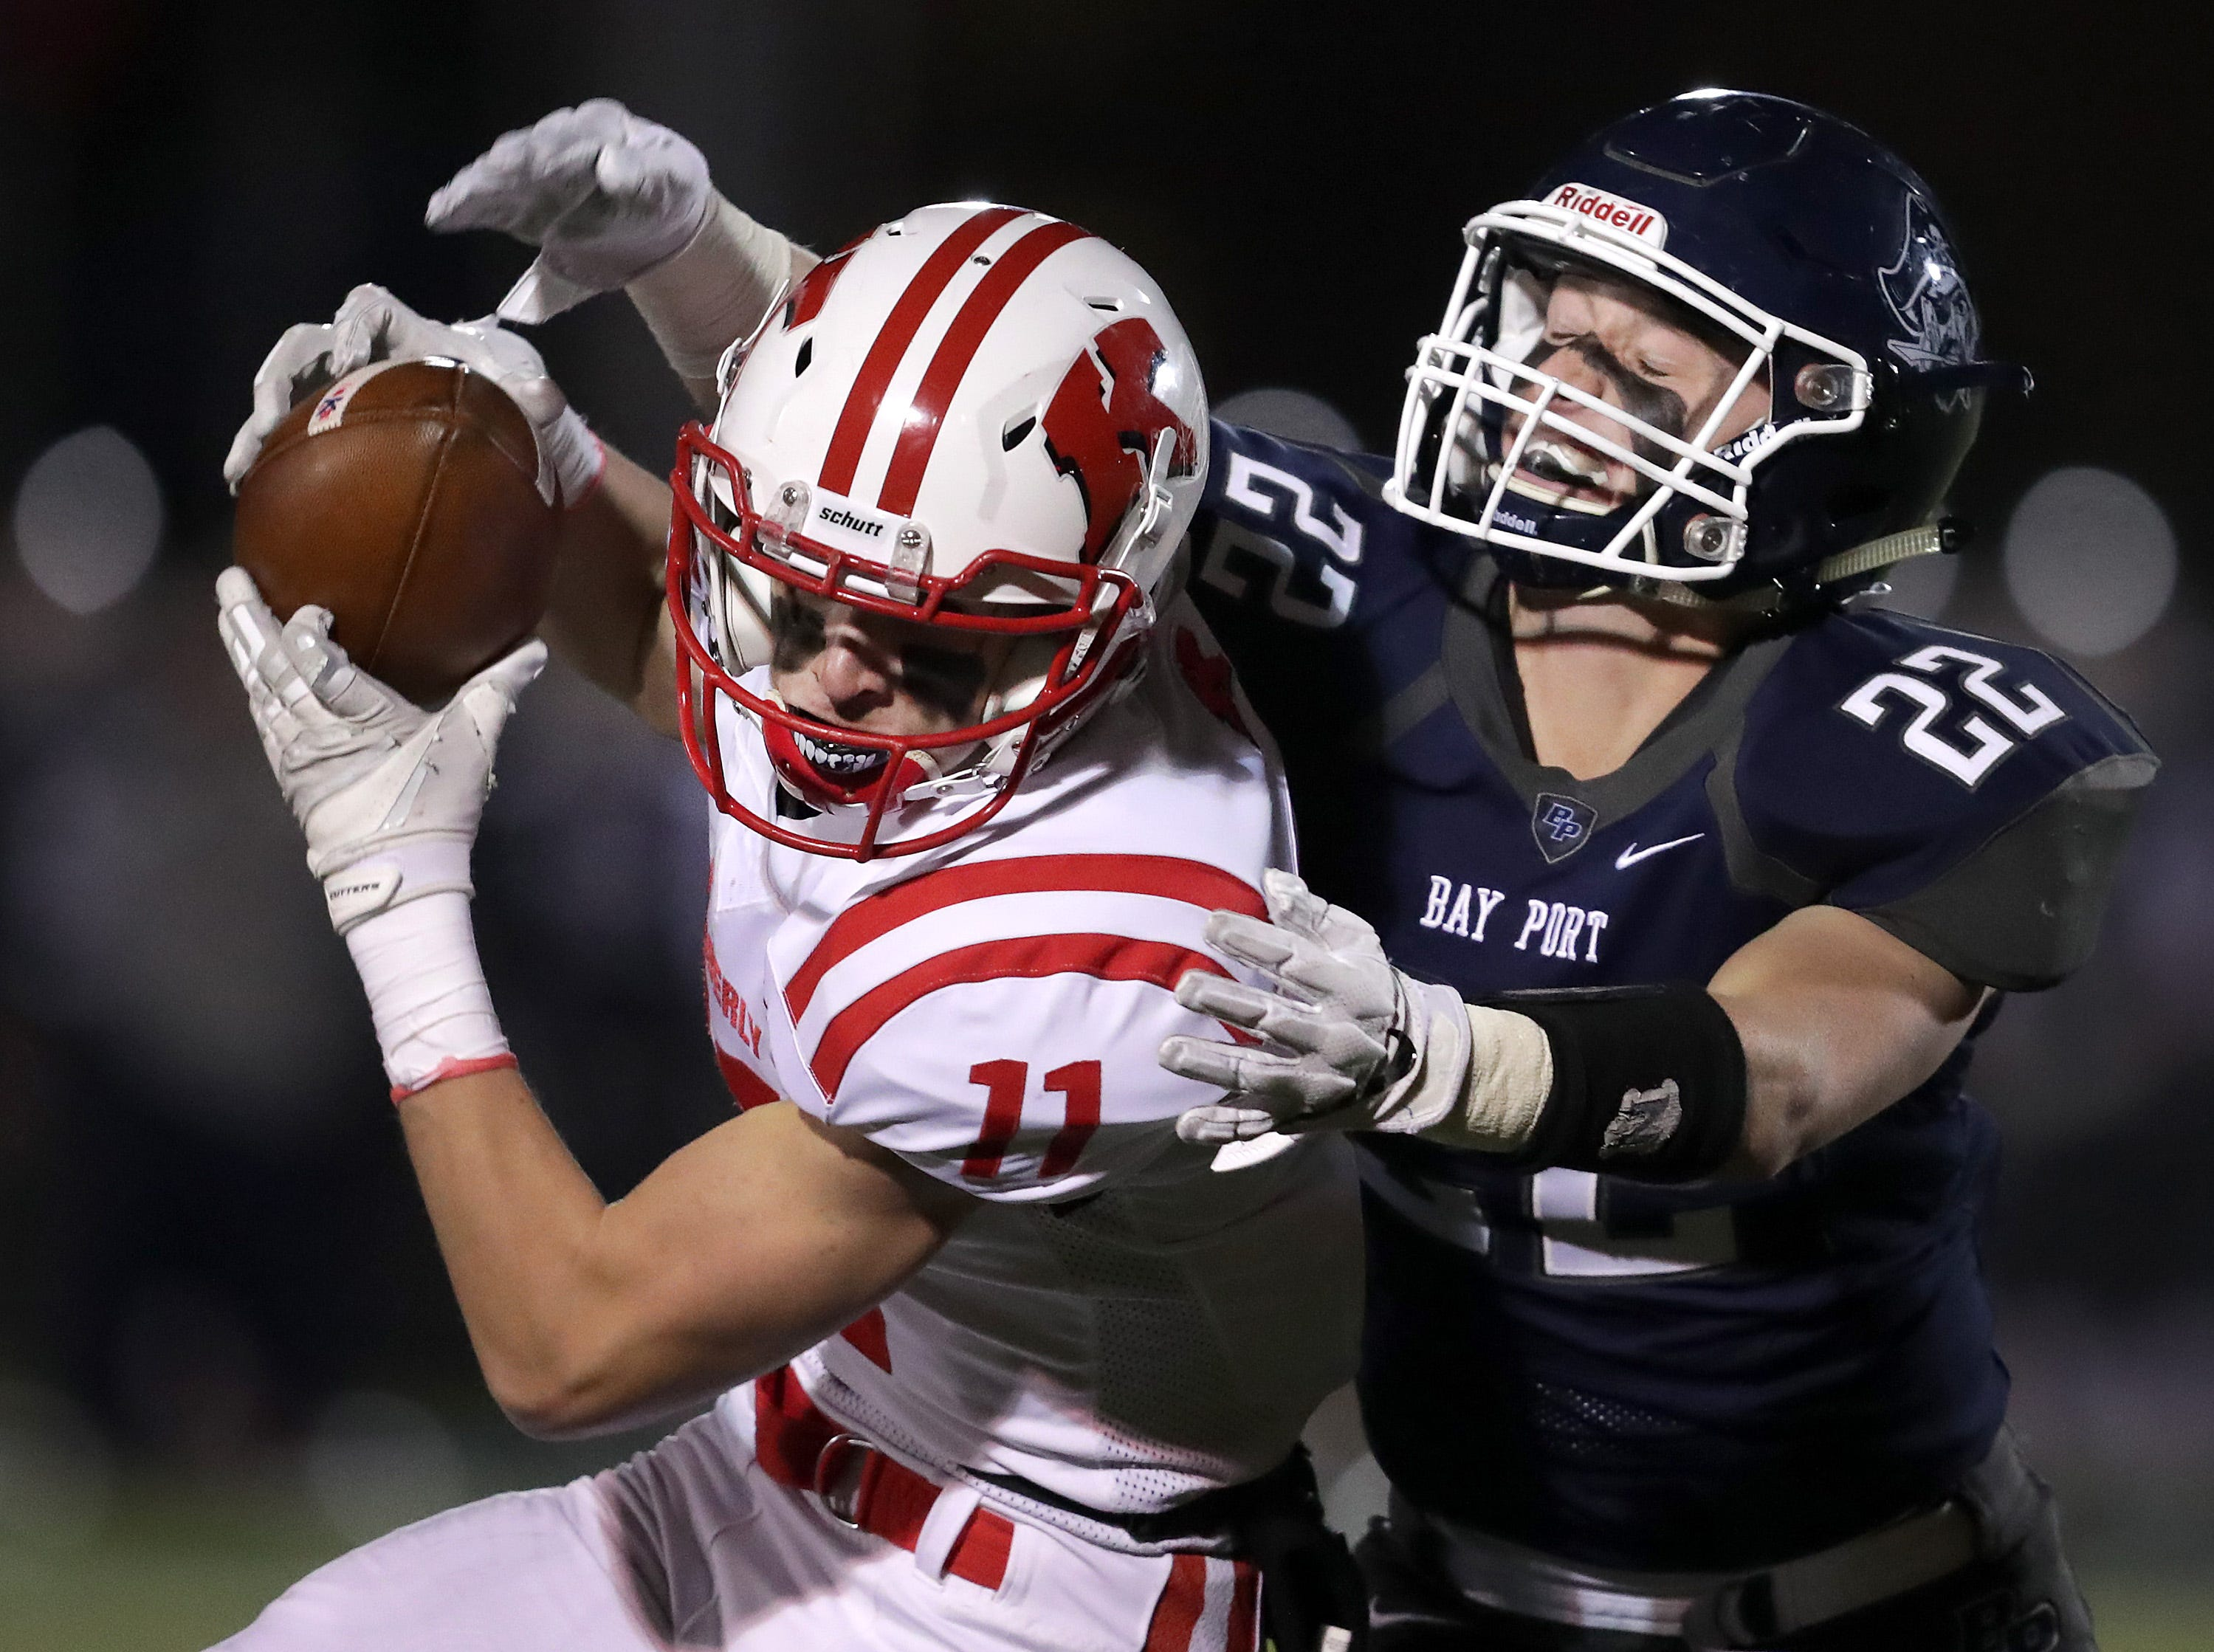 Kimberly High School's #11 Conner Wnek against Bayport High School's #22 Jake Berg during their WIAA Division 1 state quarterfinal football game on Friday, November 1, 2018, in Green Bay, Wis.  Kimberly defeated Bayport 38 to 20.